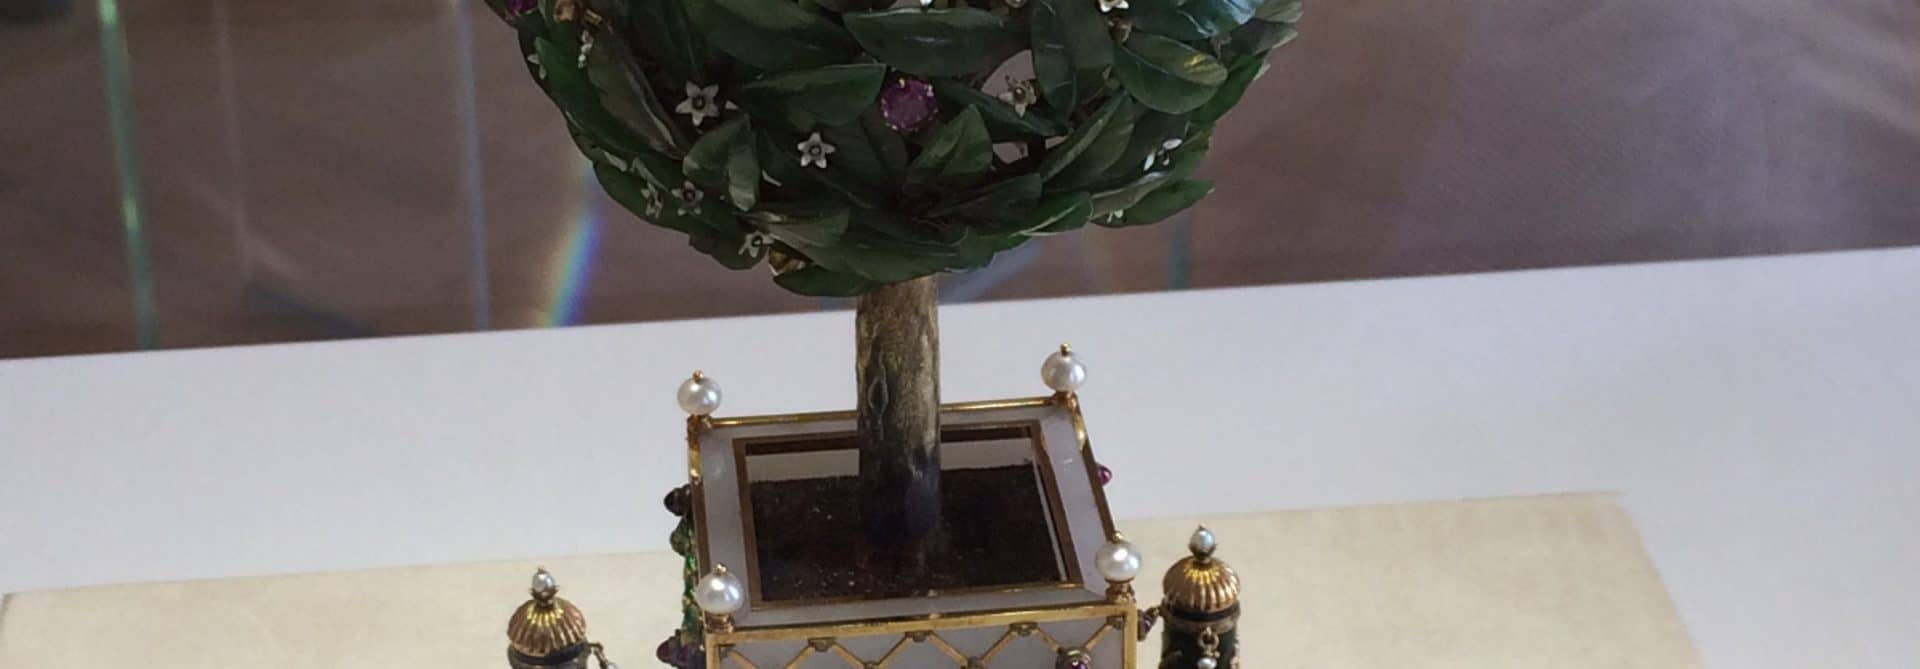 Bay Tree Faberge Egg, St. Petersburg, Russia